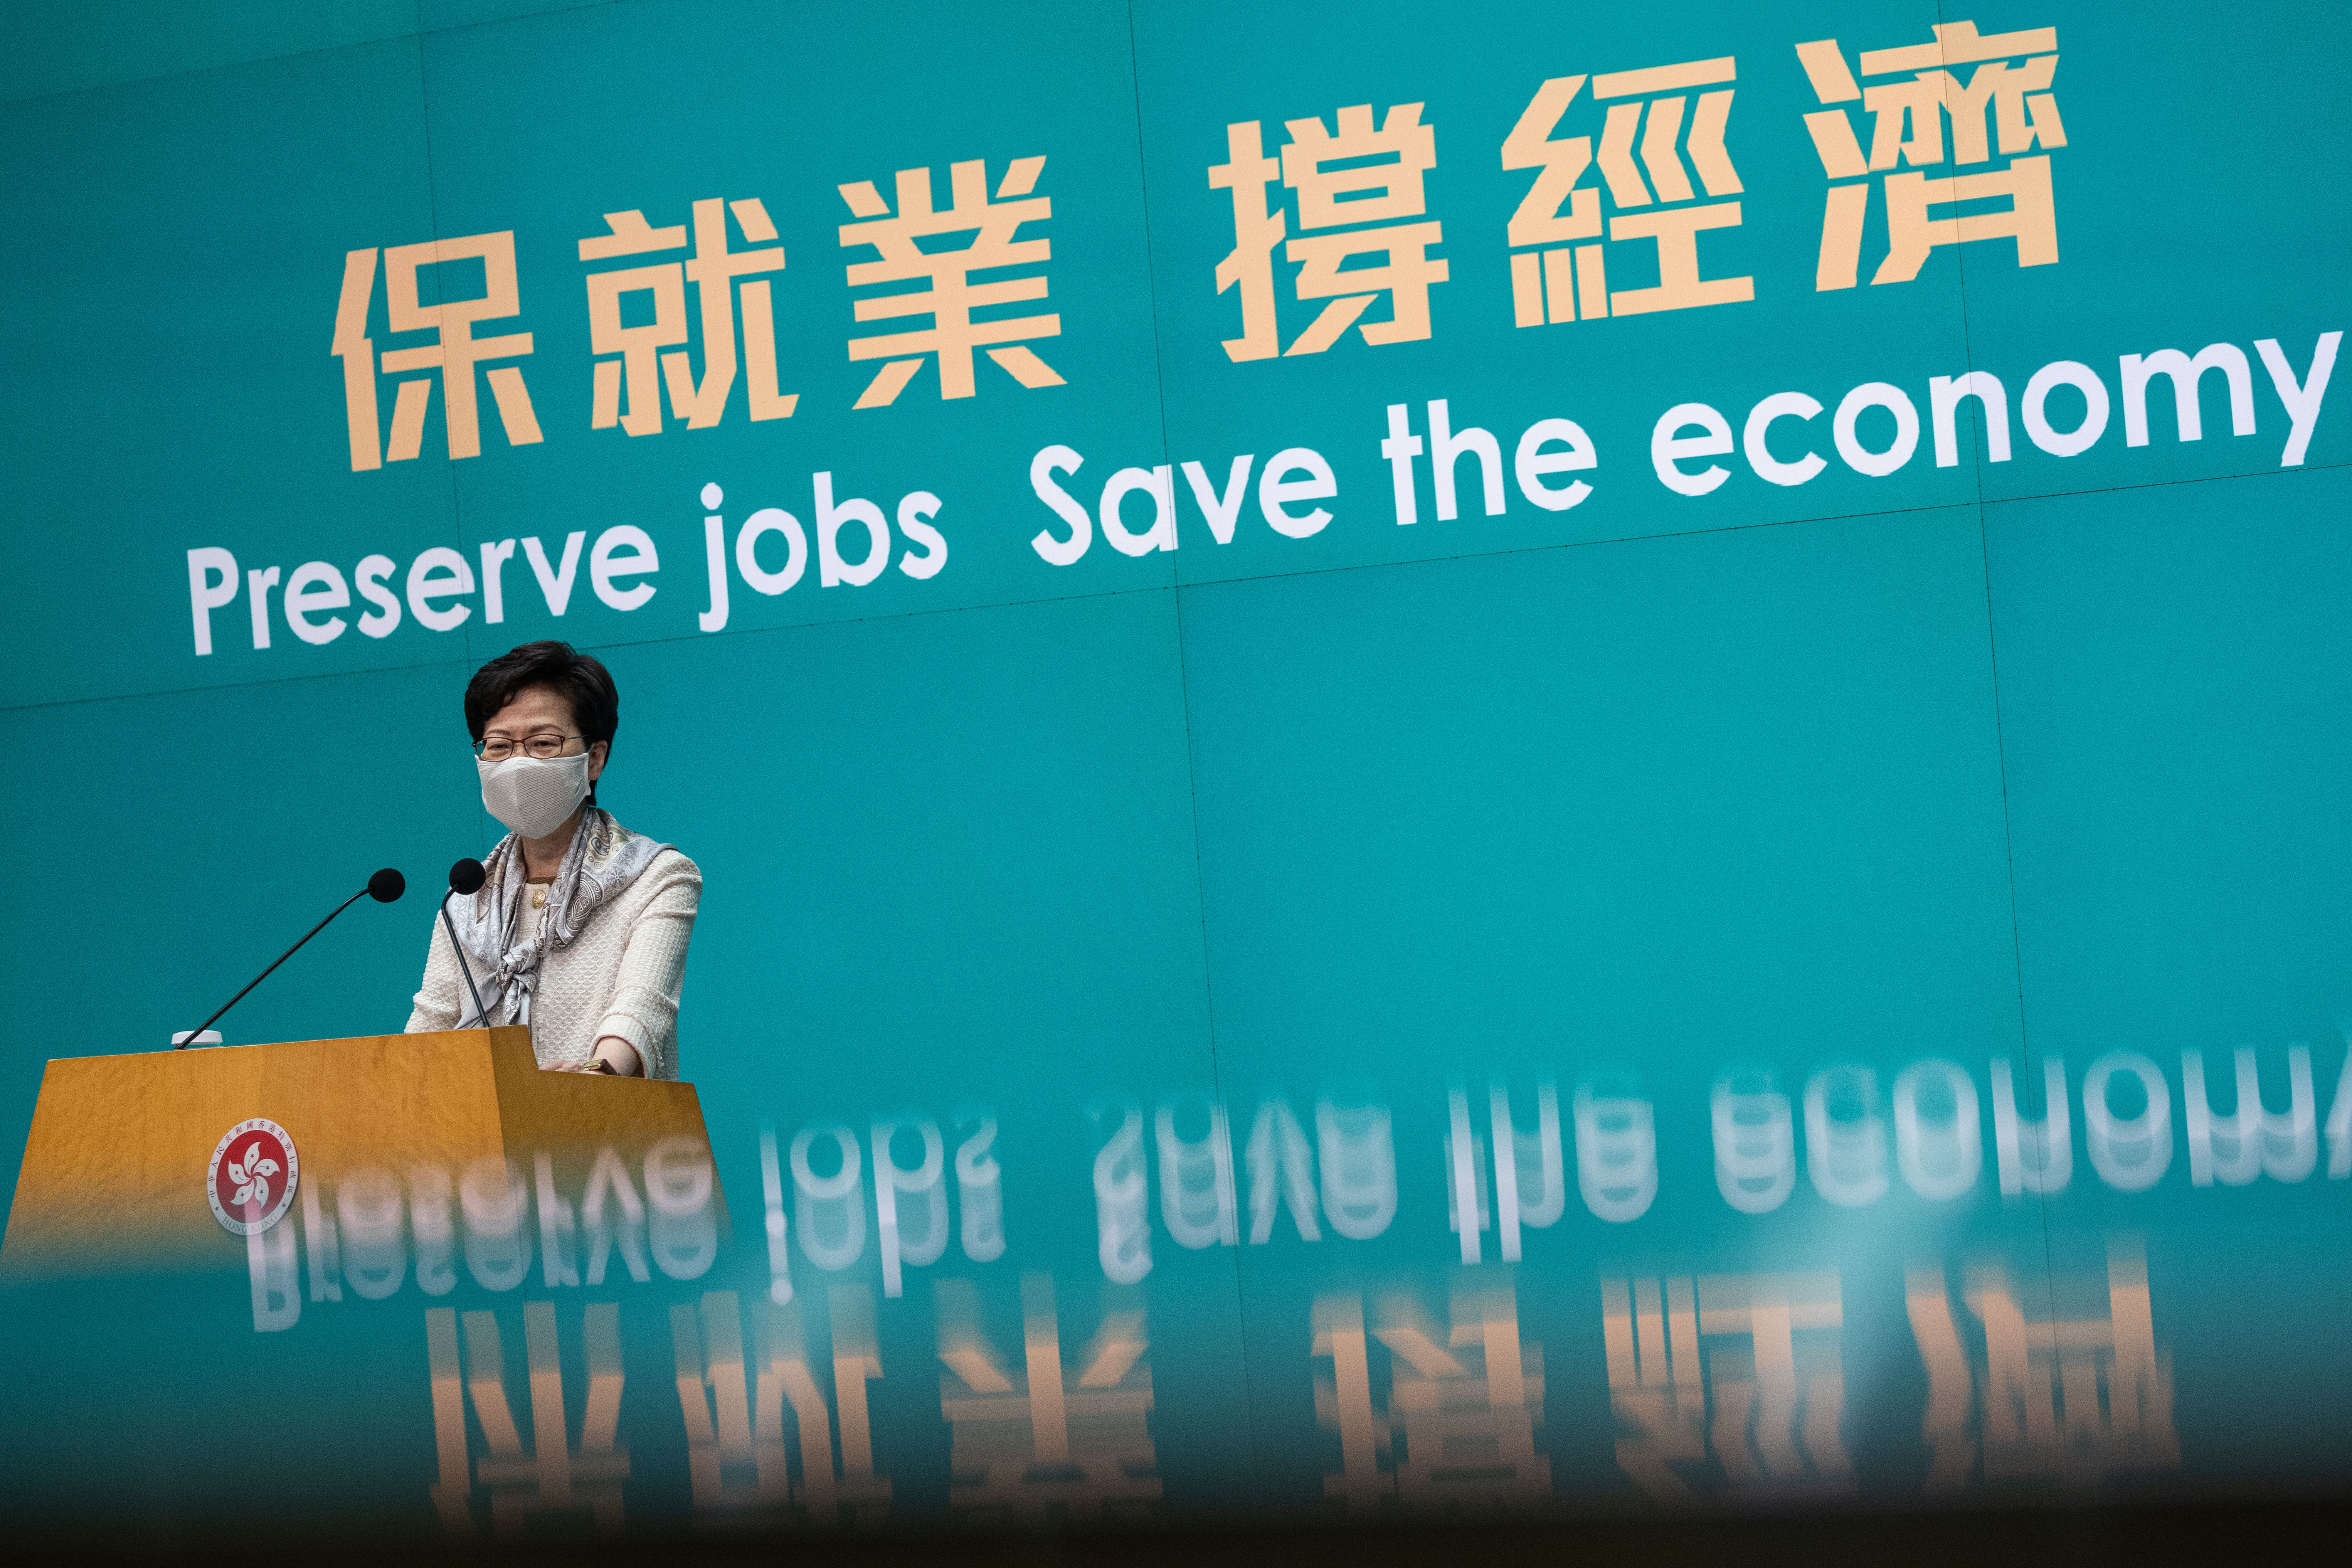 Hong Kong's chief executive Carrie Lam speaks during a press conference on economic relief measures on May 12, 2020.